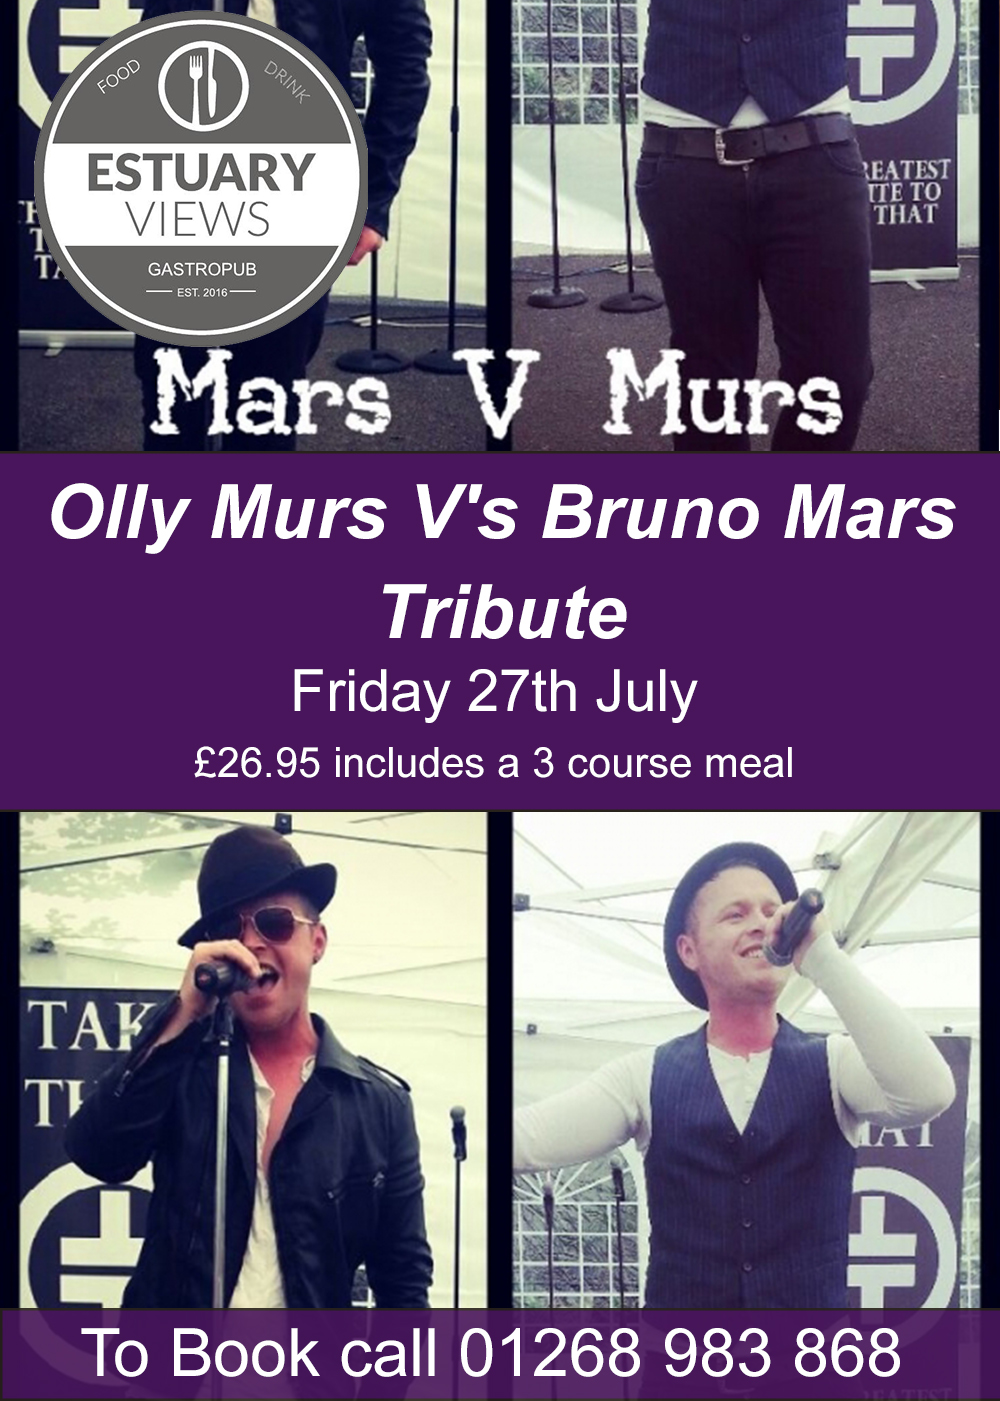 Bruno Mars V's Olly Murs Tribute Night